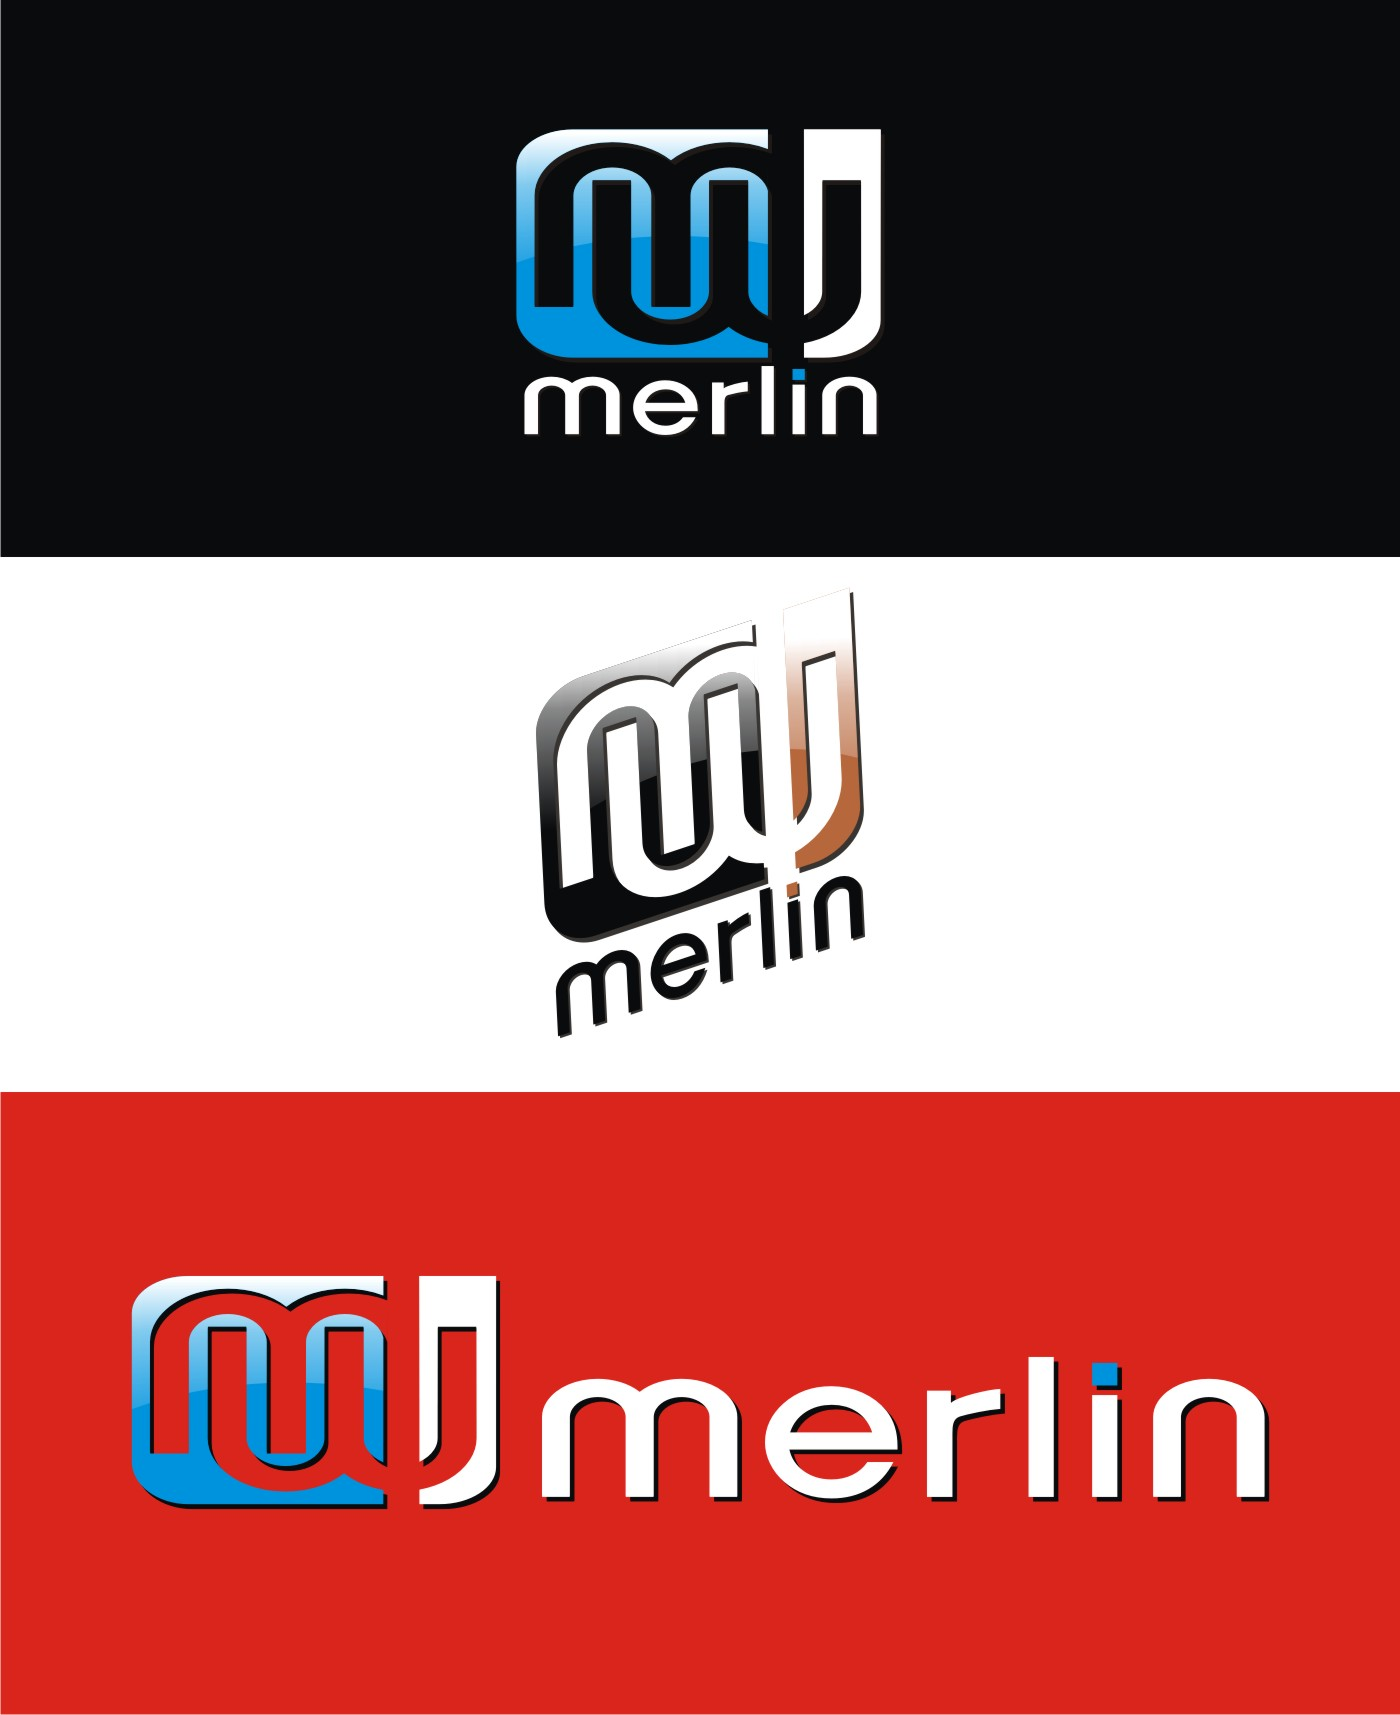 Logo Design by Private User - Entry No. 100 in the Logo Design Contest Imaginative Logo Design for Merlin.